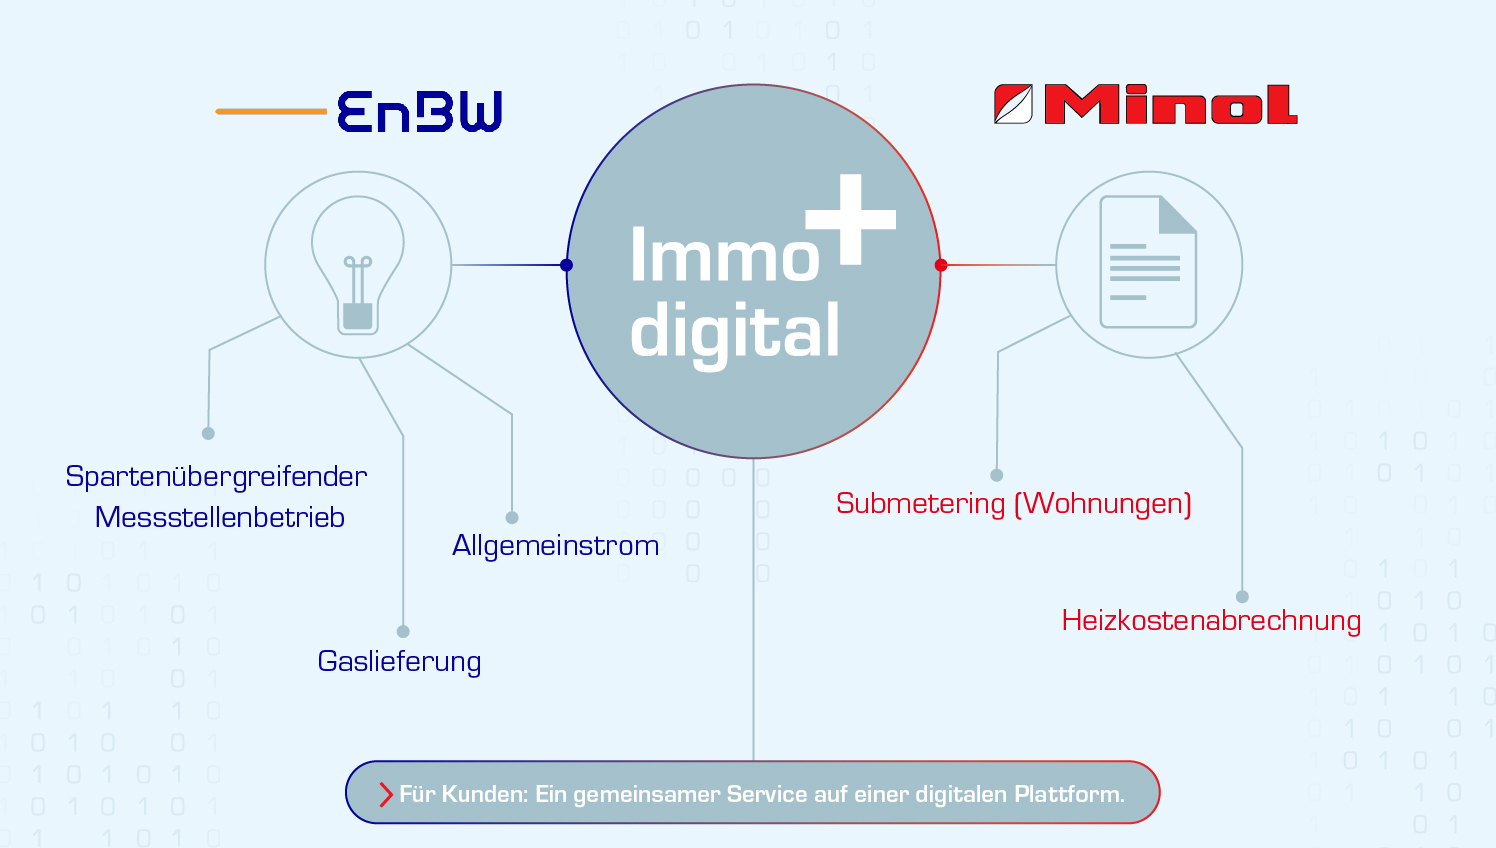 enbw ablesung